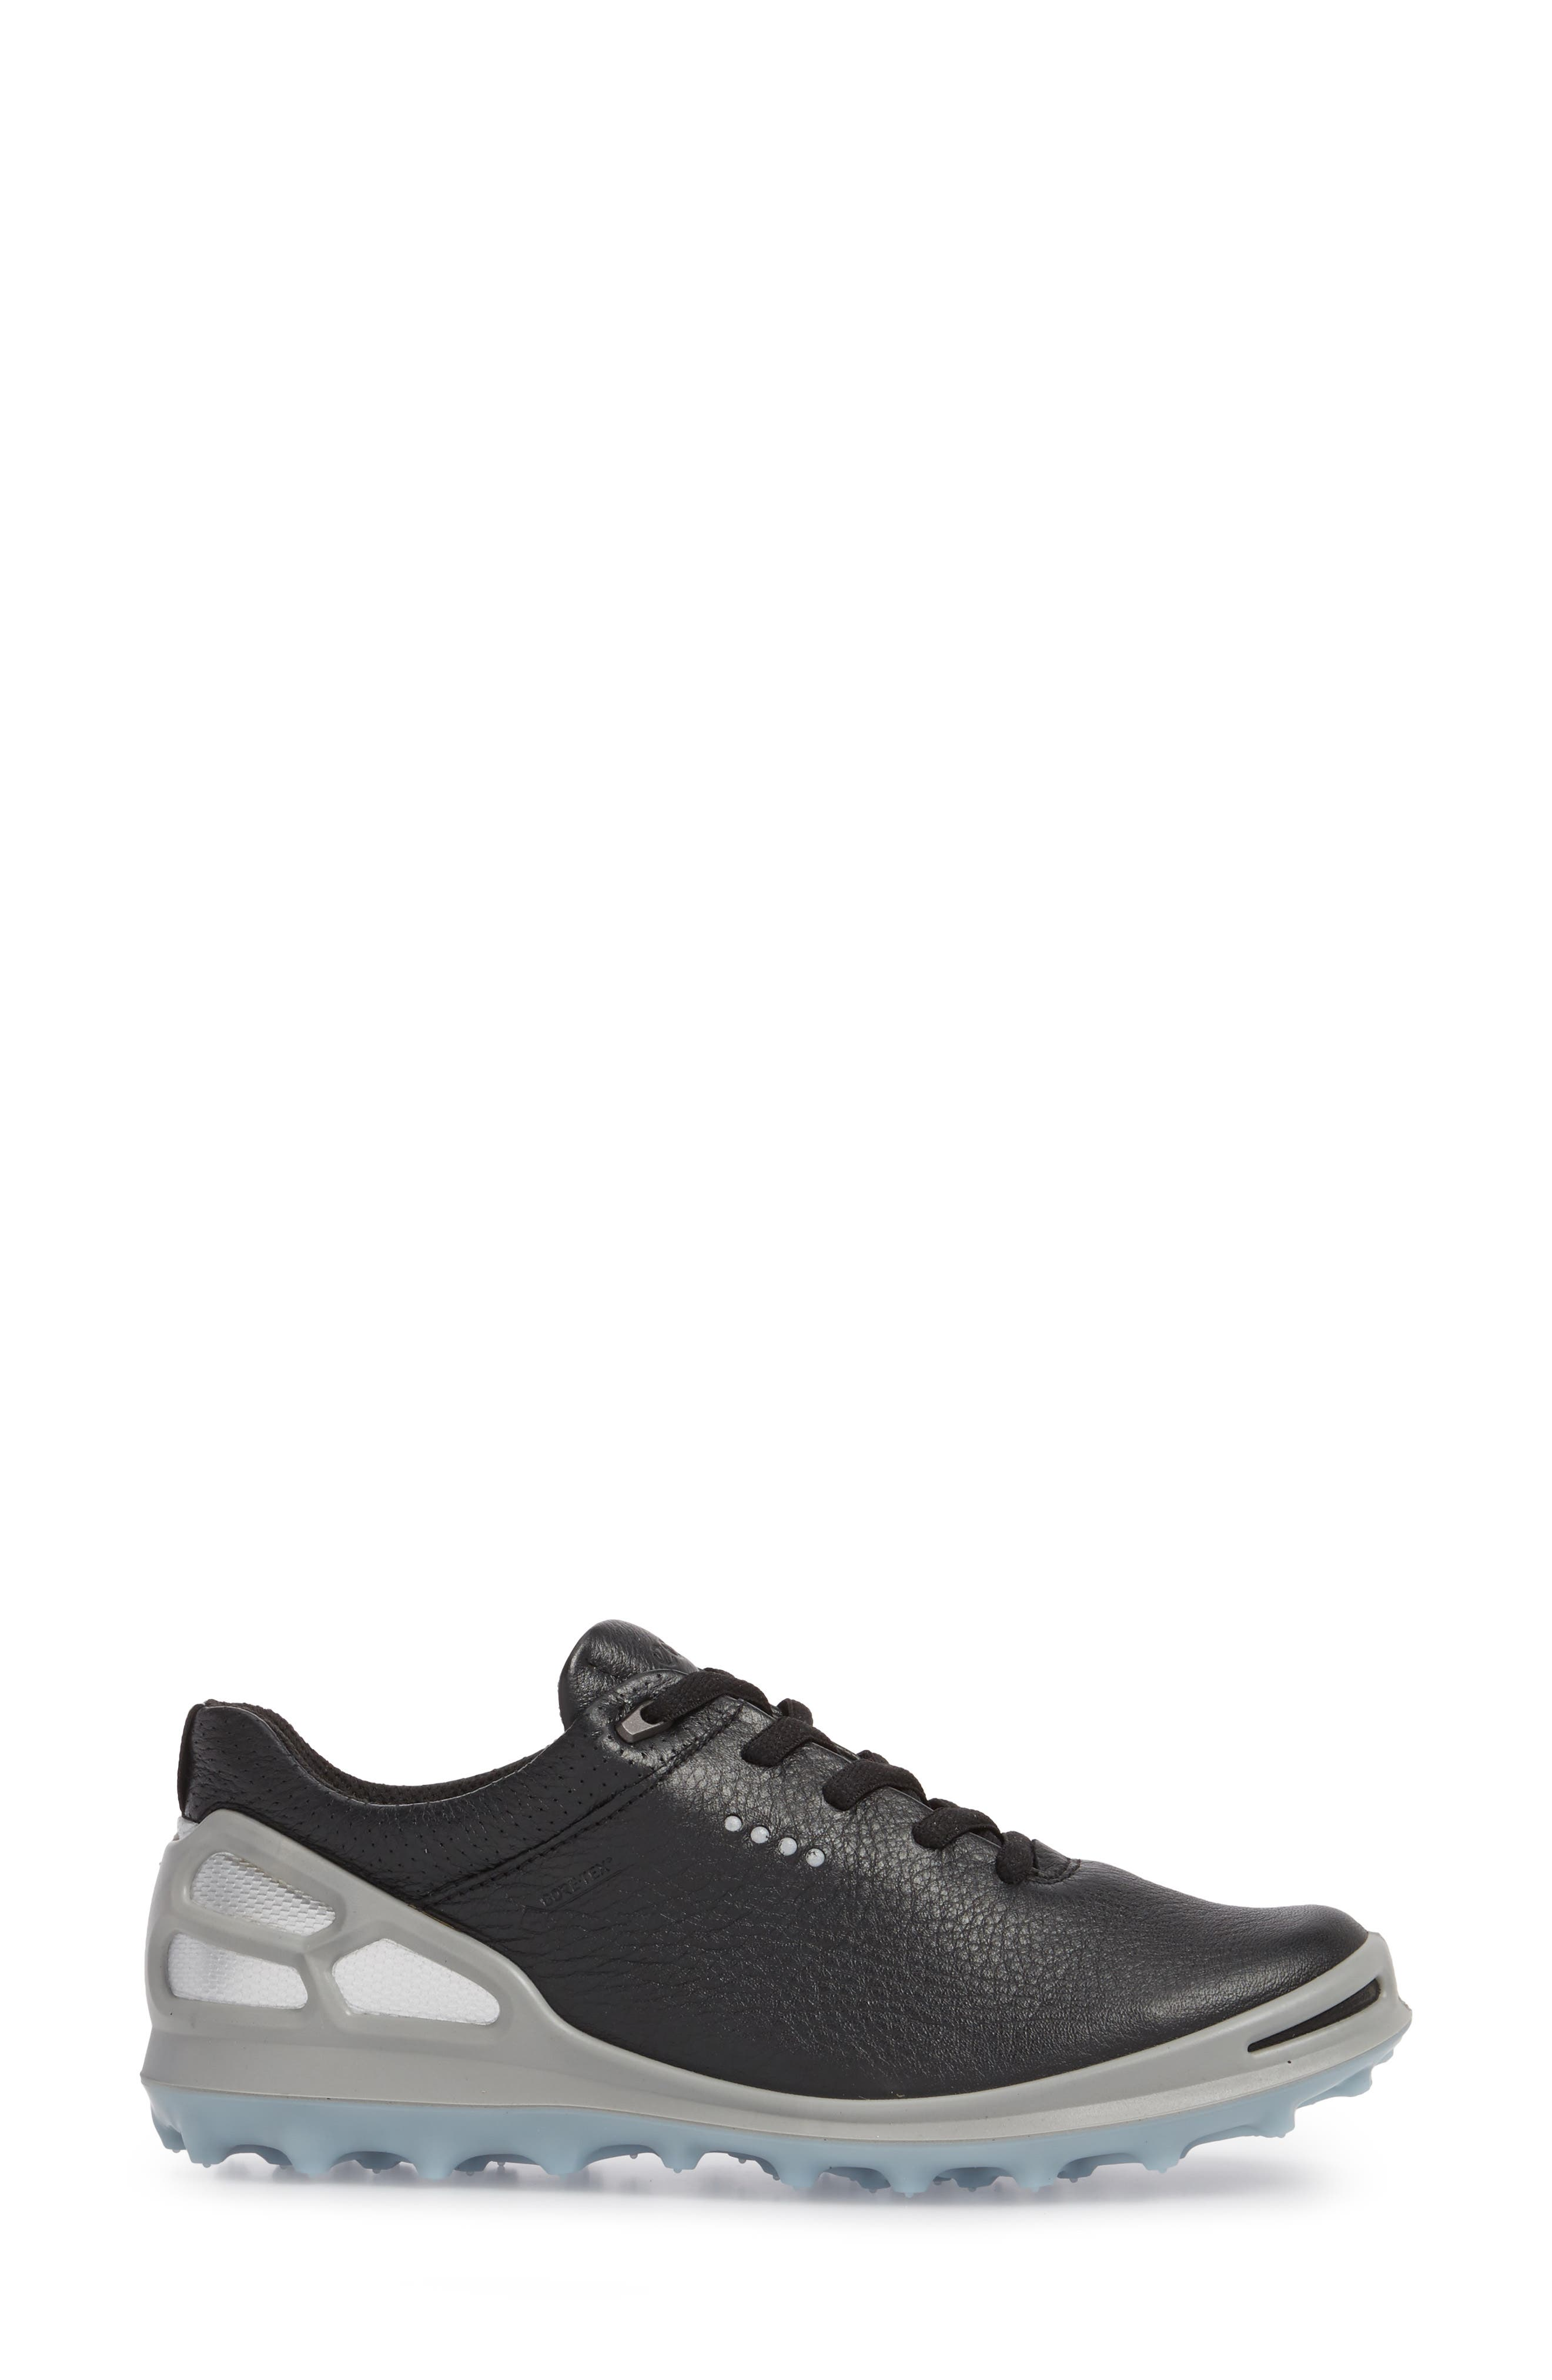 Golf Cage Pro Gore-Tex<sup>®</sup> Waterproof Shoe,                             Alternate thumbnail 3, color,                             Black Leather